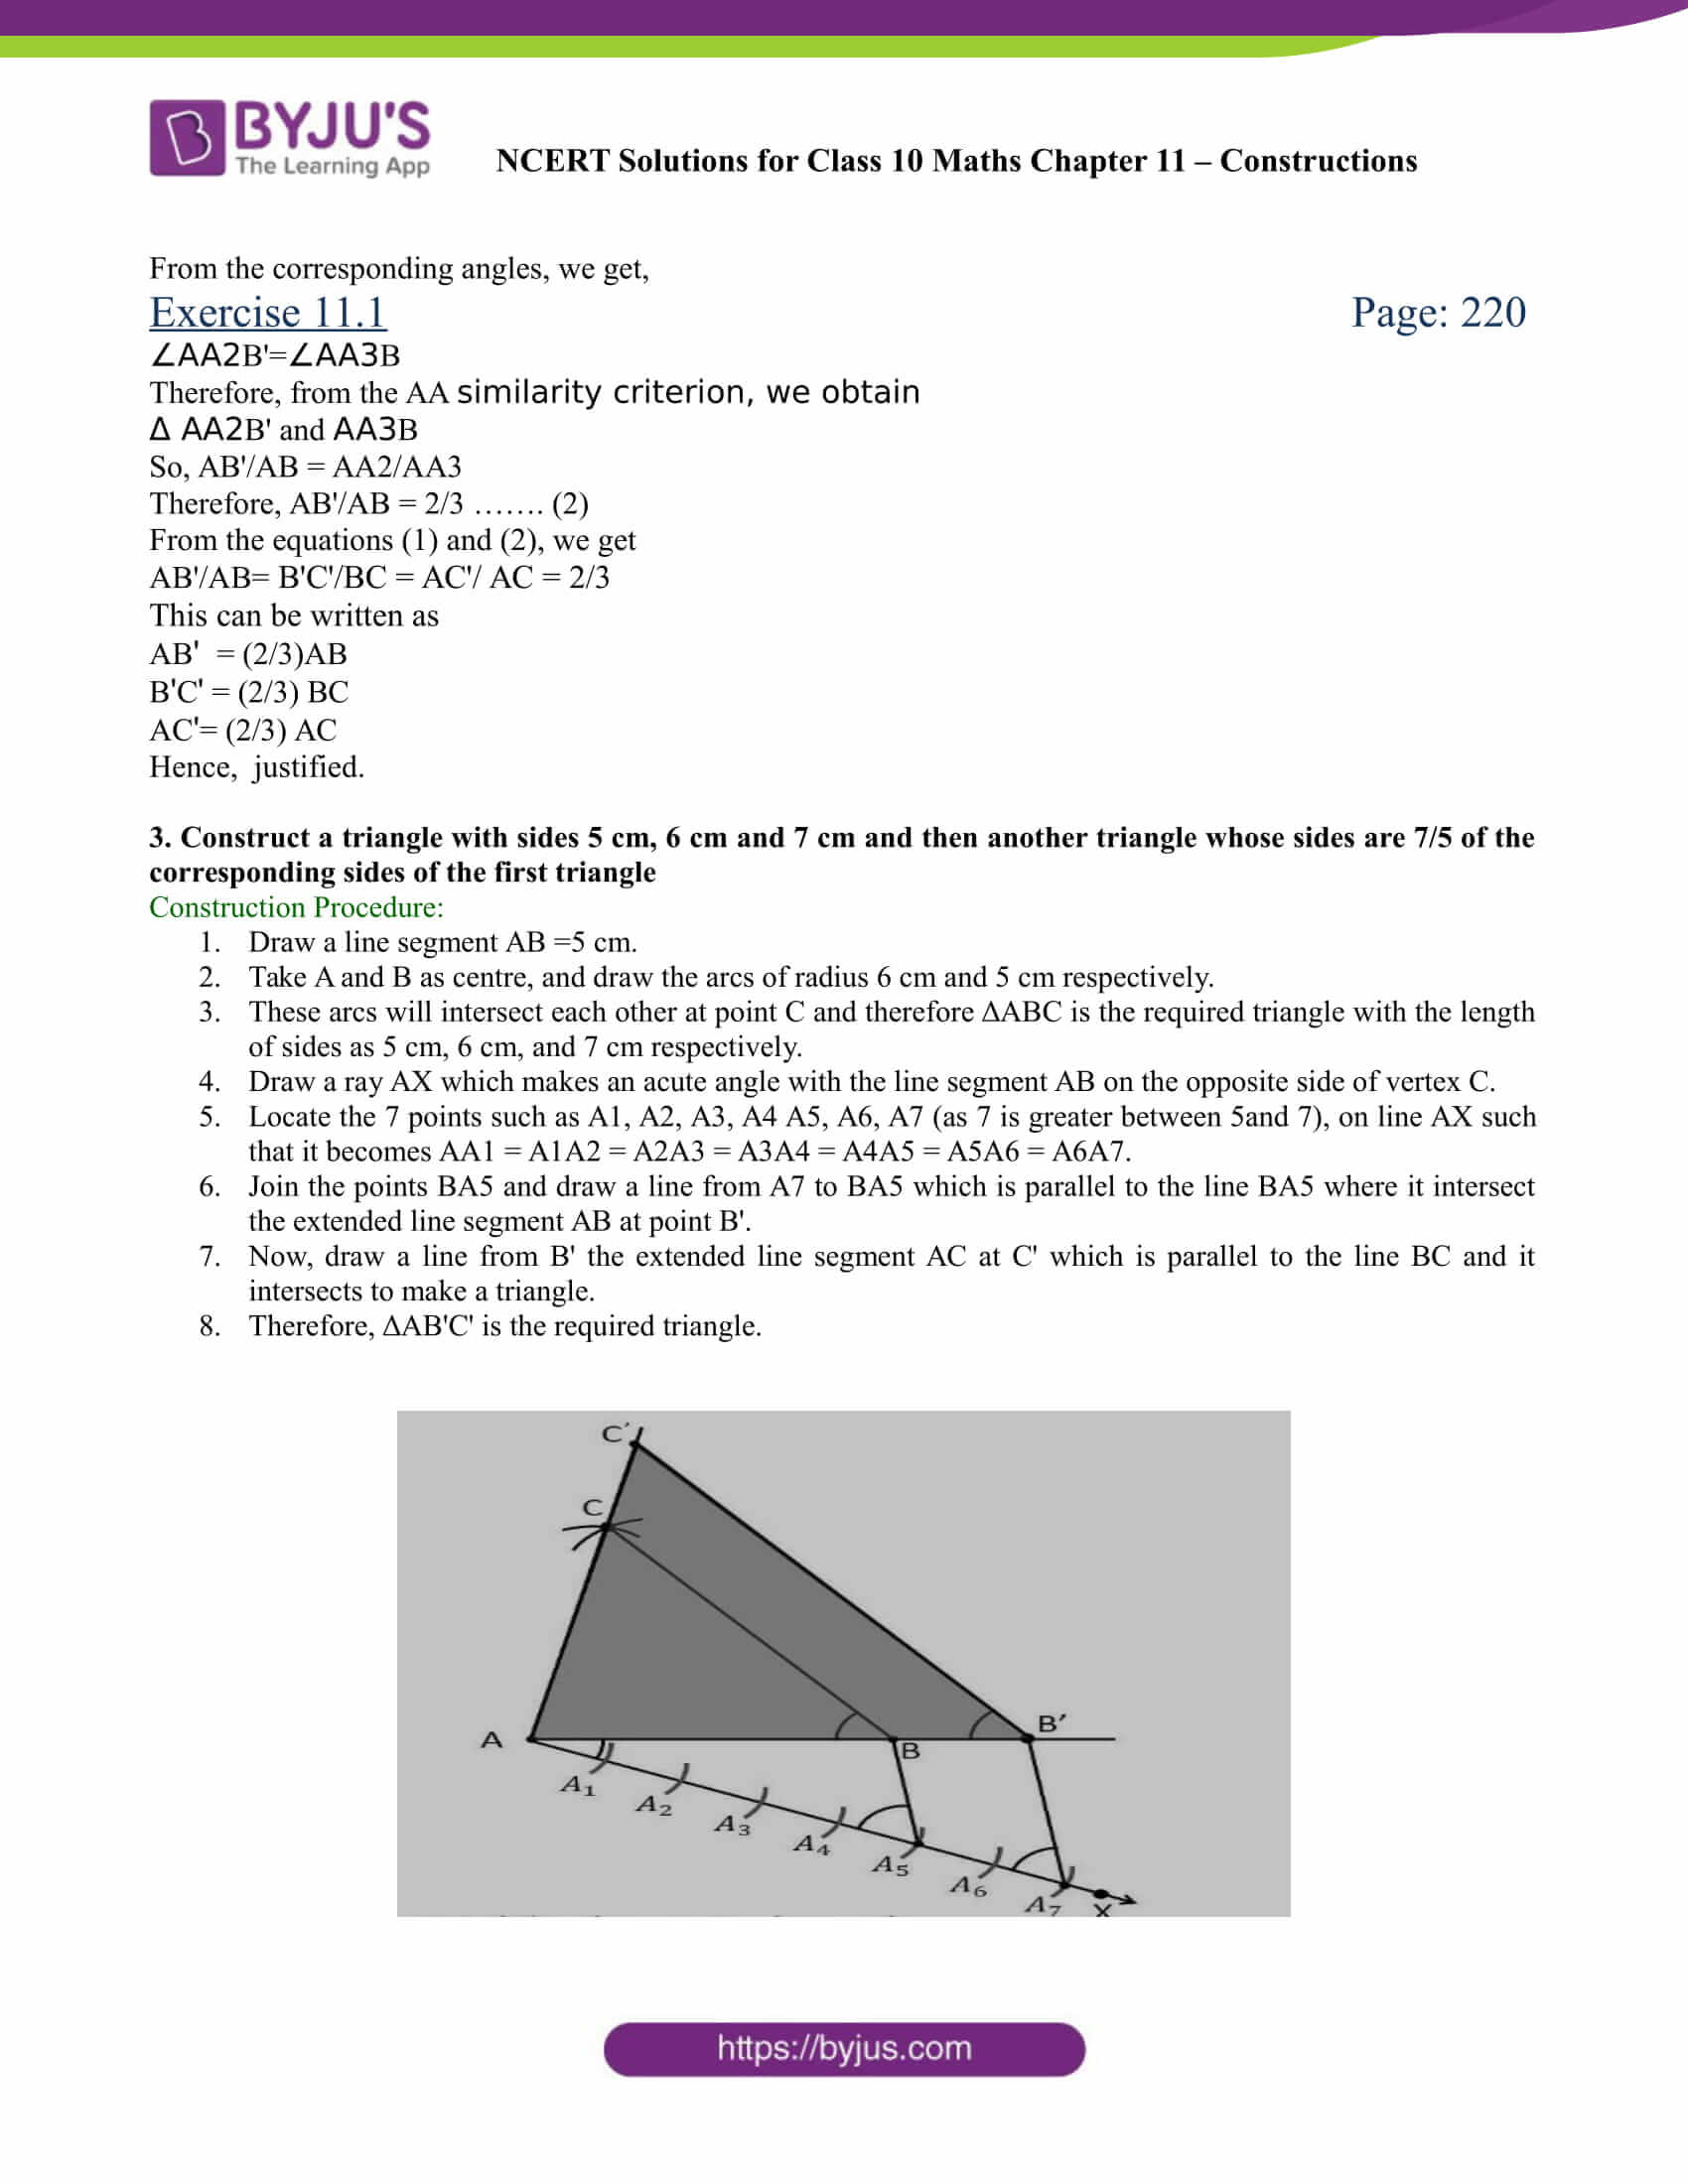 NCERT Solutions for class 10 chapter 11 Constructions Part 3